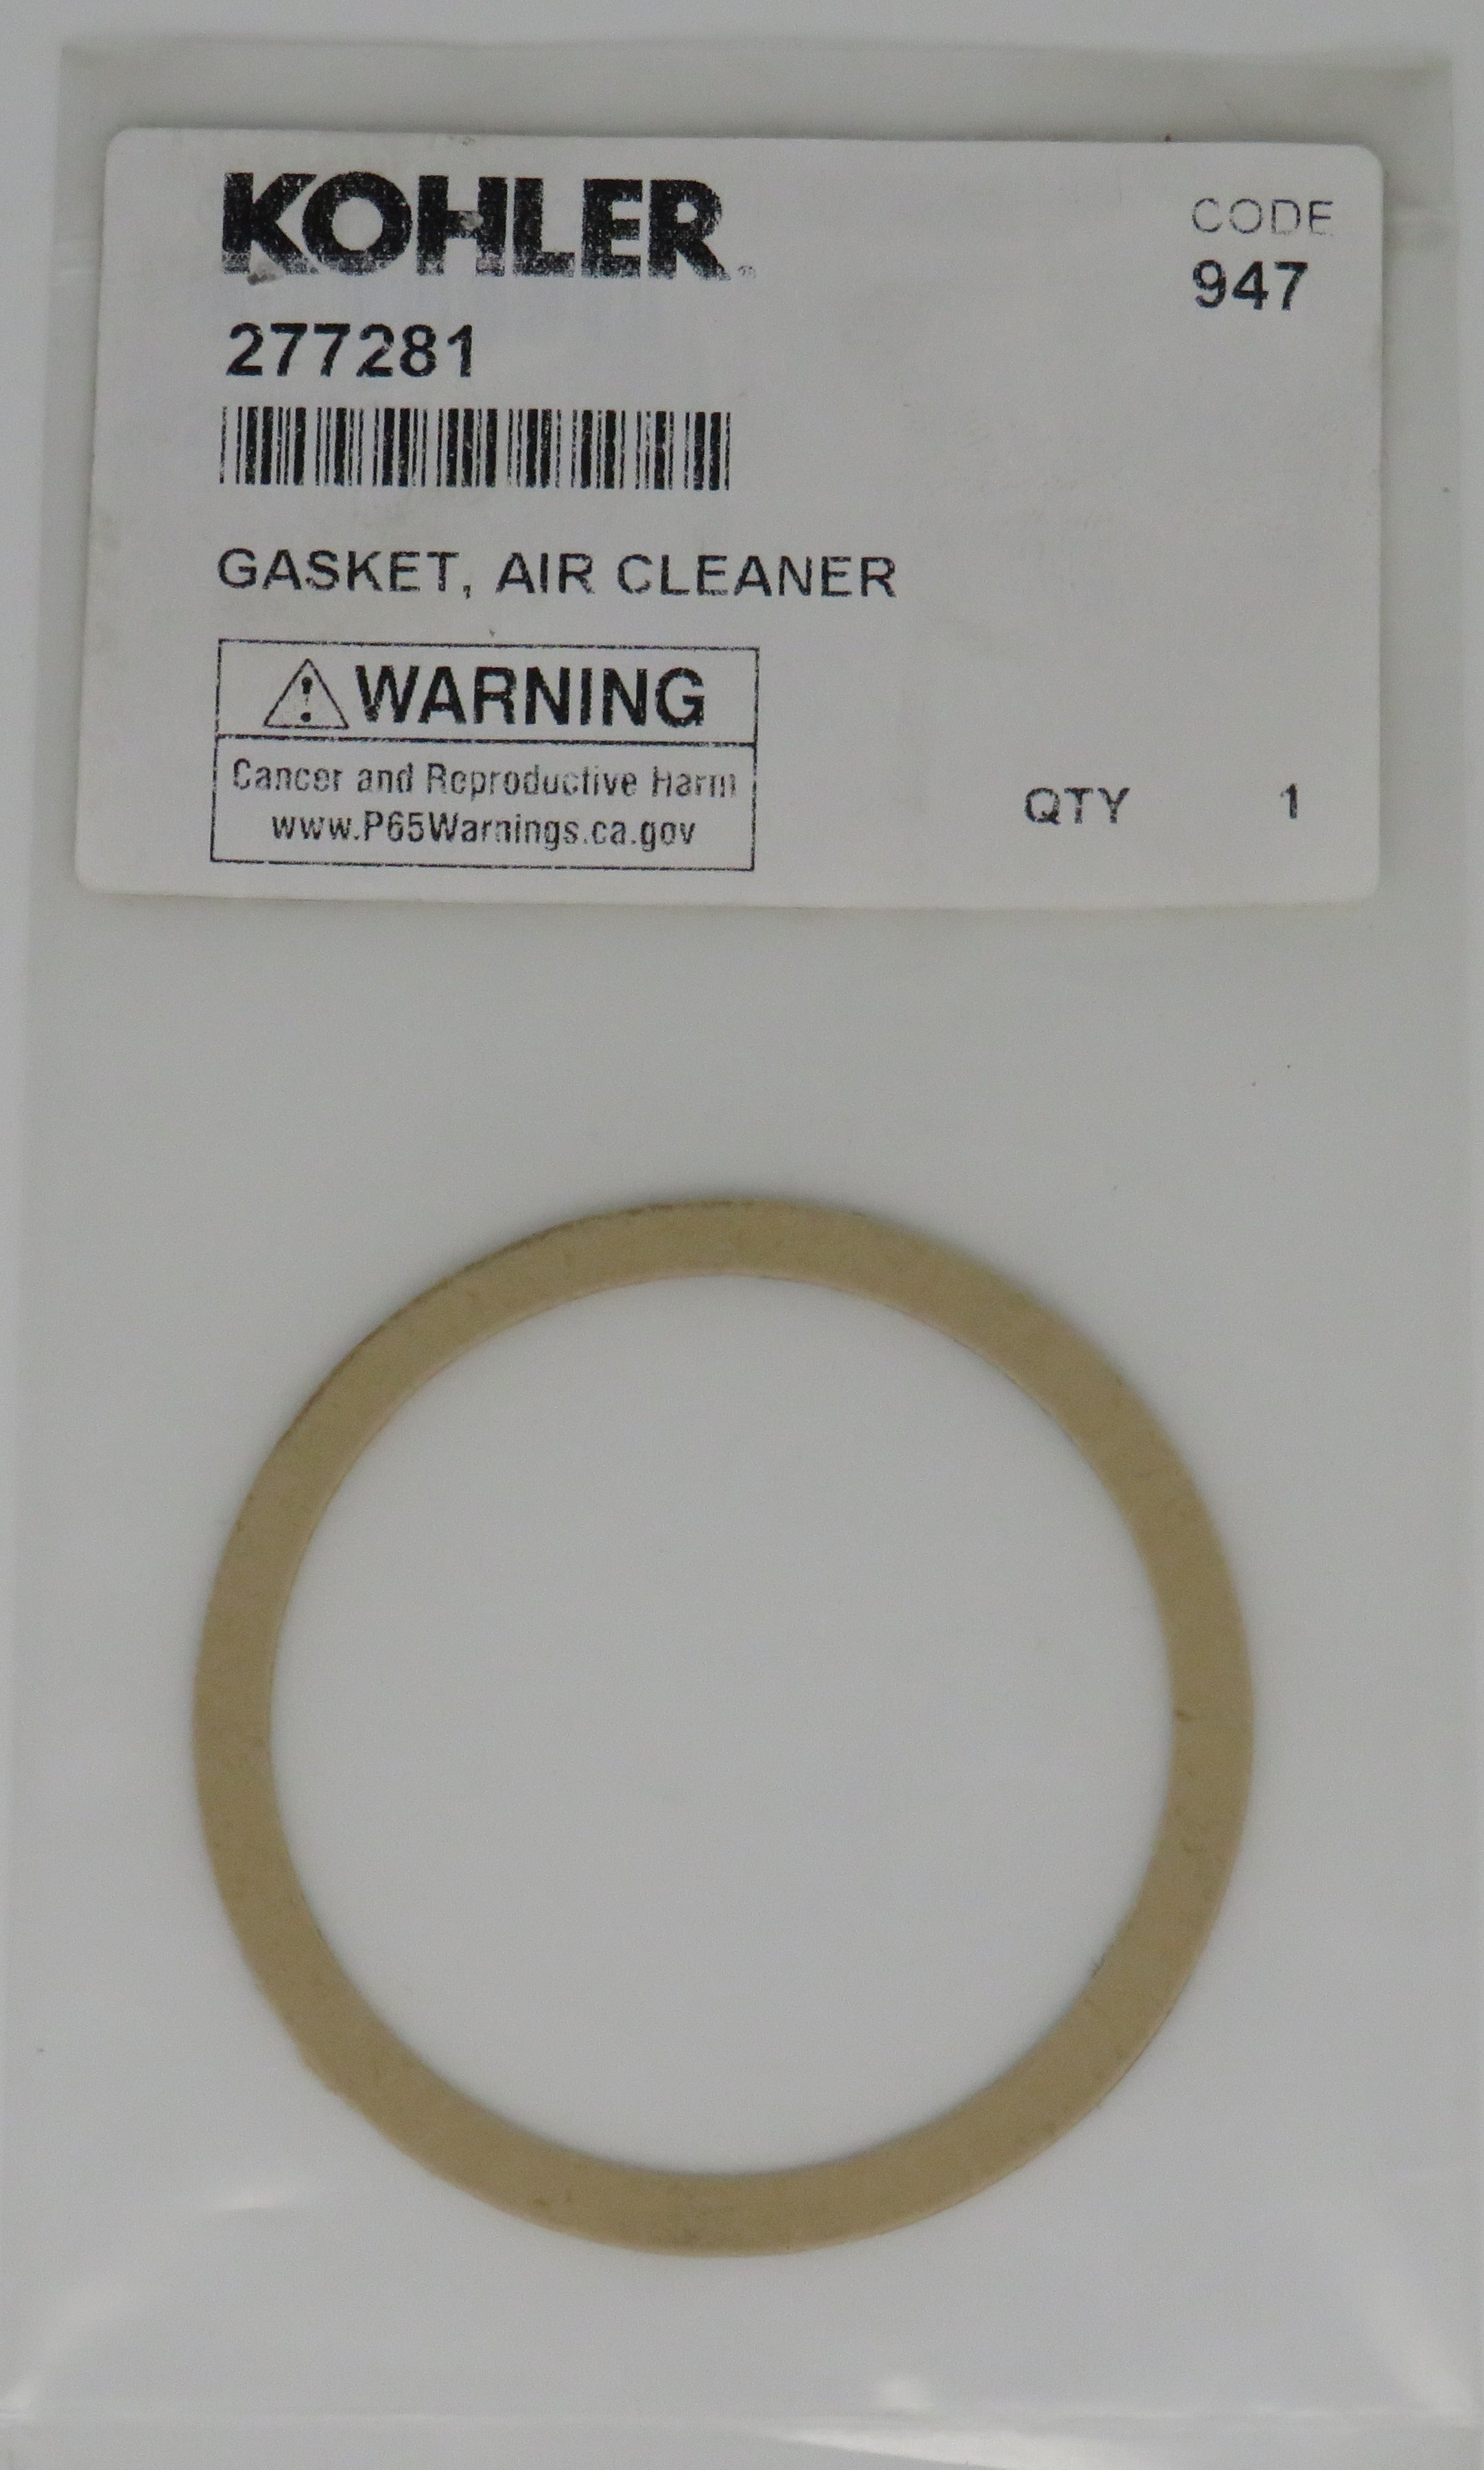 277281 Kohler Air Cleaner Gasket